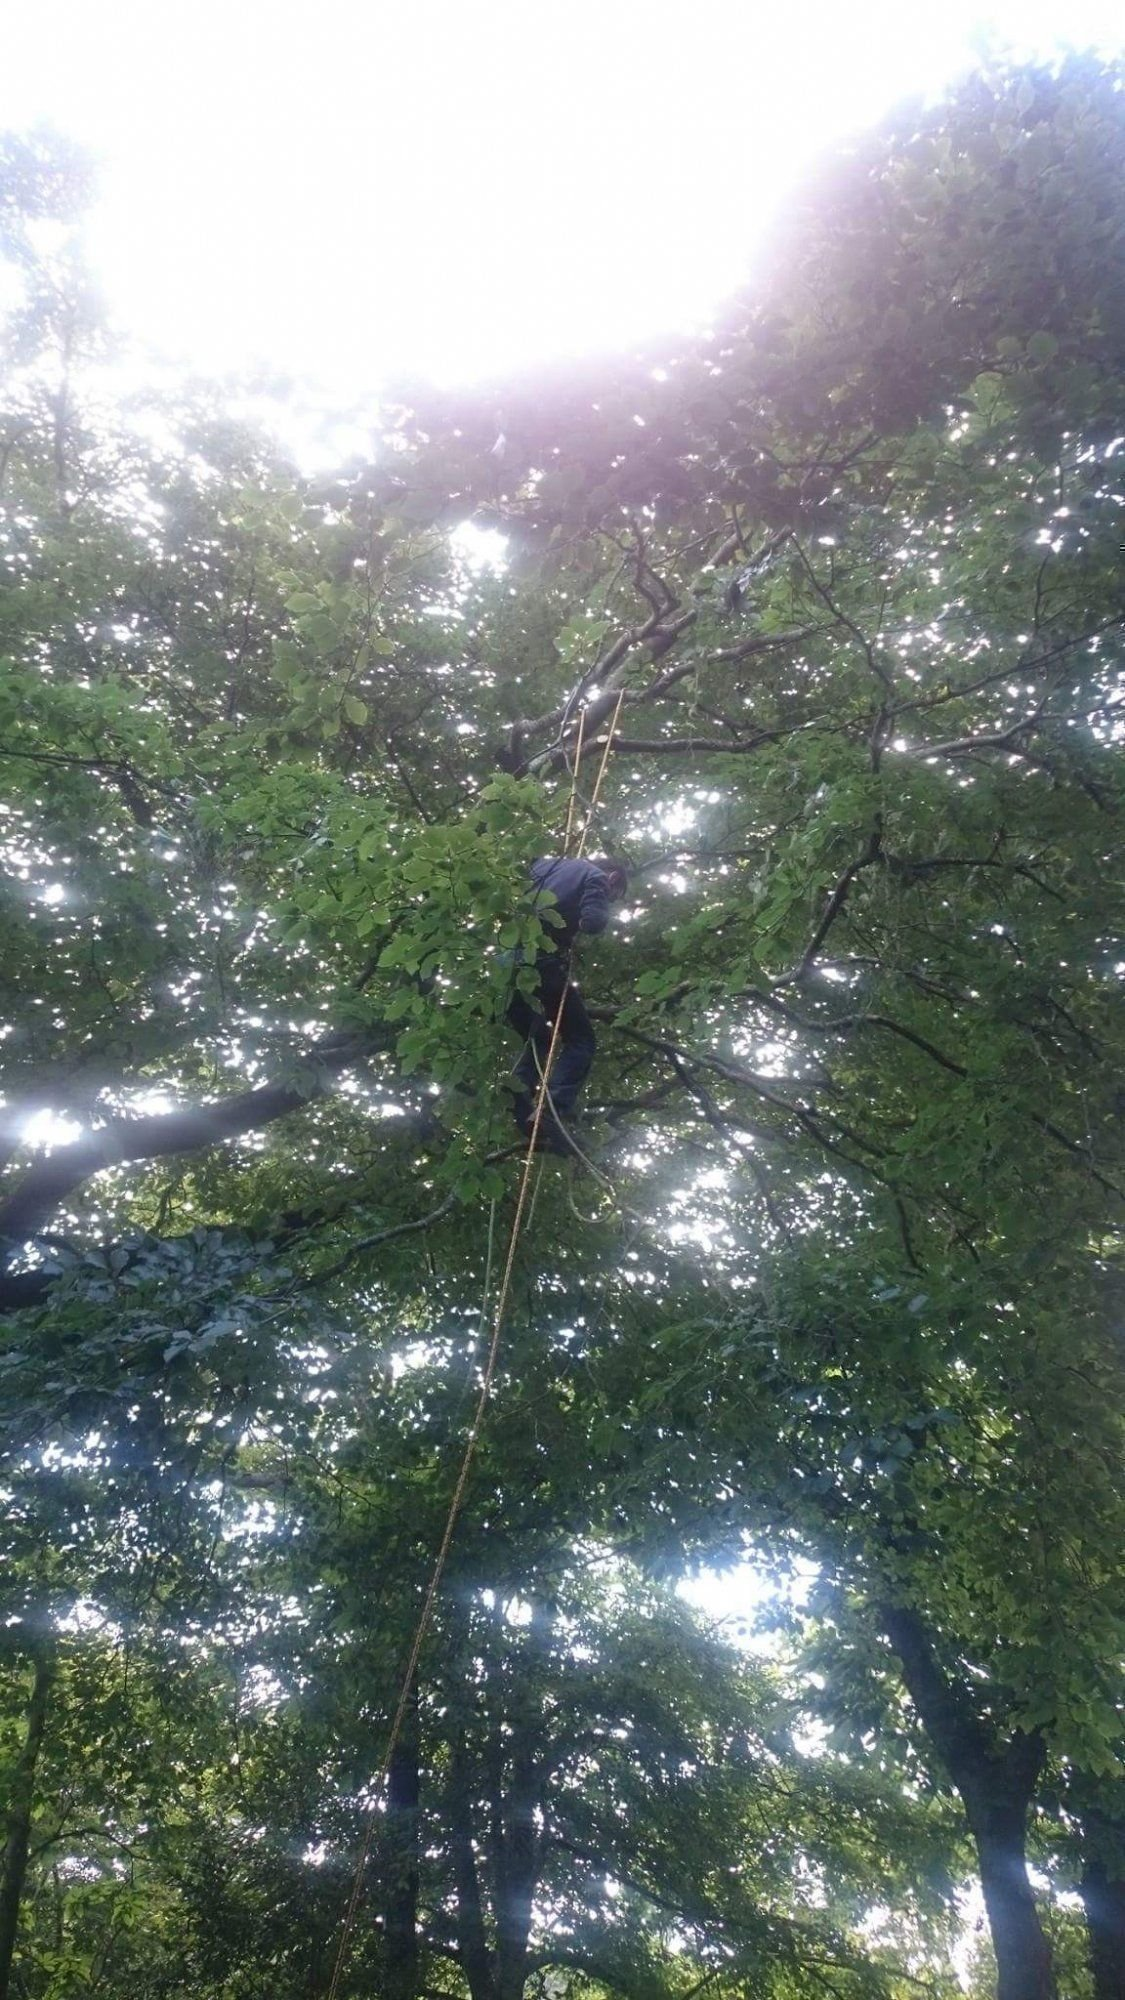 Tree surgery services in Salcombe and South Hams